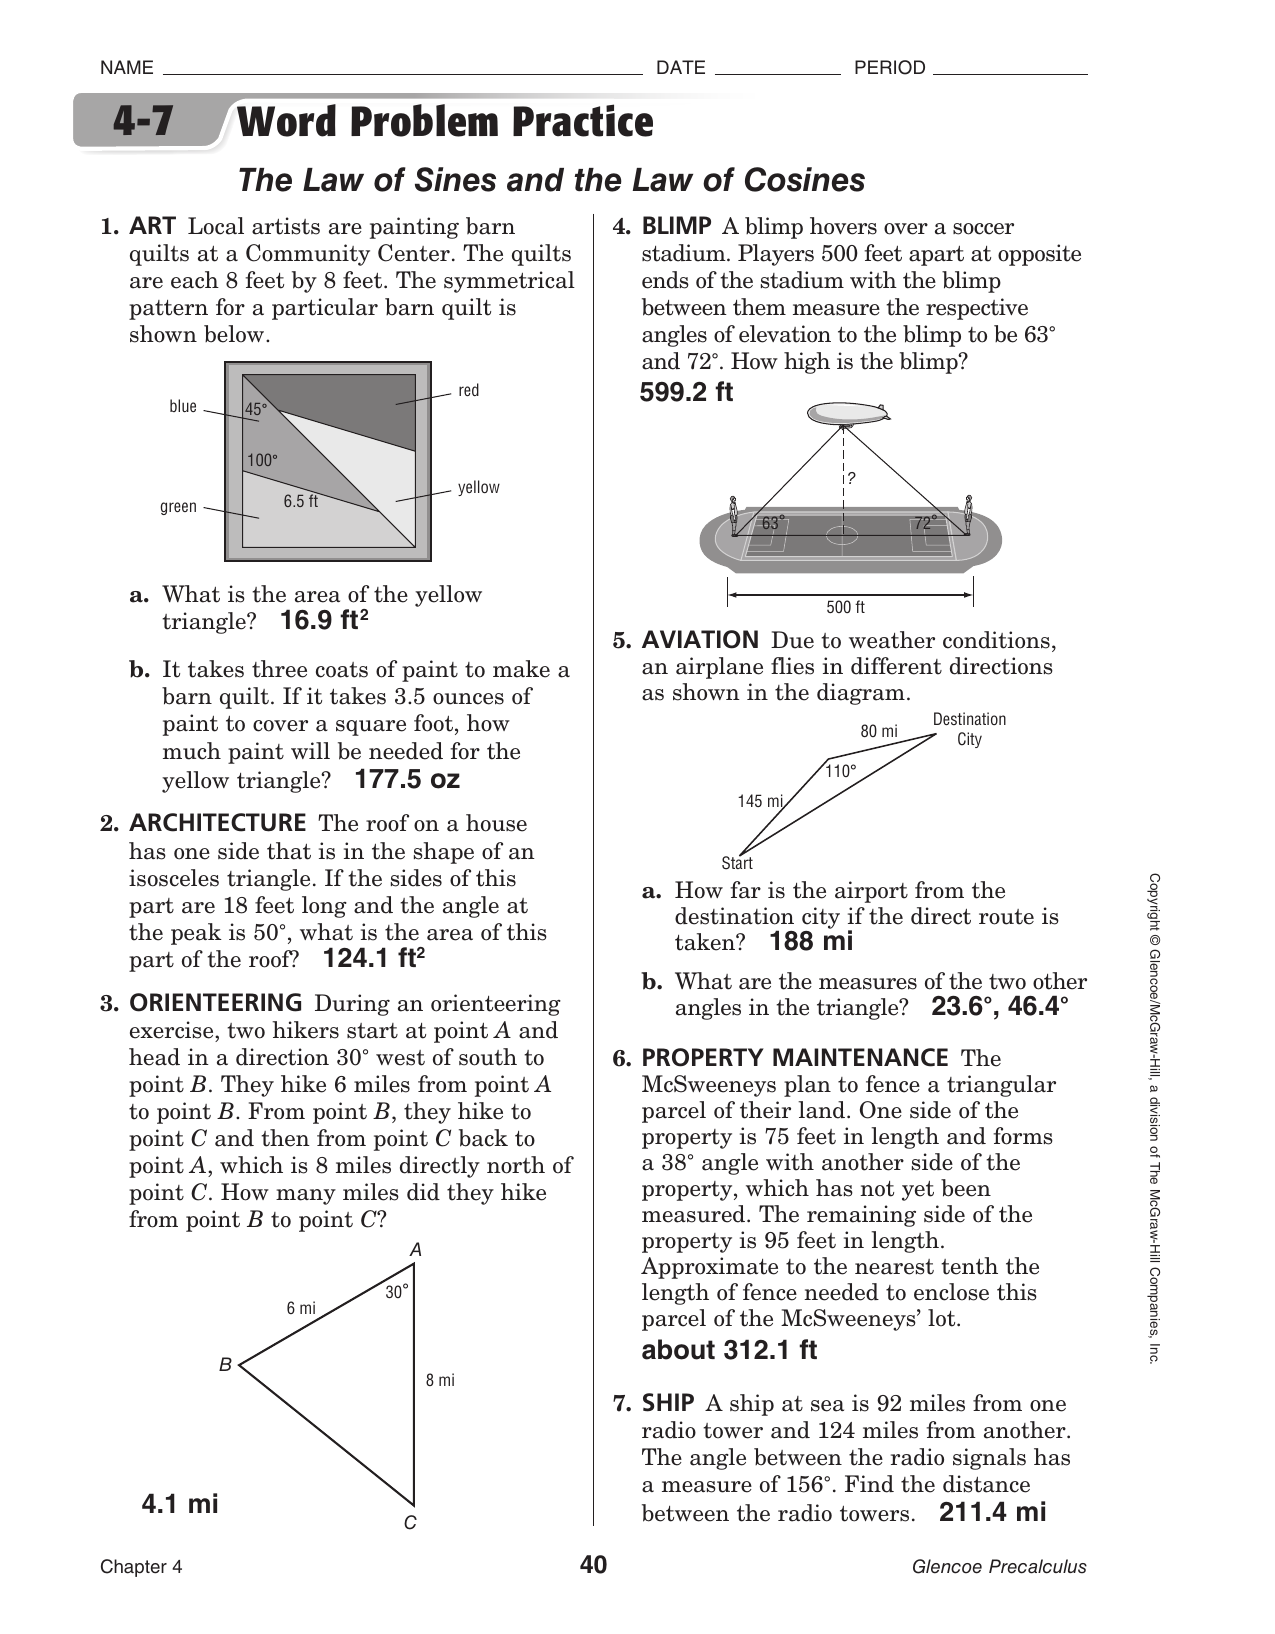 Law of Sines and Law of Cosines Skills Practice Worksheet      I L in addition KateHo » Practice law of cosines worksheet besides  also worksheets  Law Of Sines And Cosines Skills Practice Worksheet I L besides Law of Sines and Cosines Practice Worksheet with answer by as well 4 7 Word Problem Practice The Law of Sines and the Law of Cosines likewise Law of Cosines  How and when to use   ex les problems and besides Theorem Worksheet And Its Converse Current Portrayal On Geometry The in addition Law of Cosines or Cosine Rule  solutions  ex les  videos also Ms McNabb Geometry as well Sine Cosine Lesson Plans   Worksheets Reviewed by Teachers also Law of Sines Worksheet  pdf  with answer key and model problems additionally Law of Cosine Ex le   MATHGOTSERVED in addition Law of Cosines Worksheet  Free pdf with answer key  visual aides and together with Practice Worksheet Law Of Sines And Law Of Cosines besides Grade 9 Mathematics Module 7 Triangle Trigonometry. on law of cosines practice worksheet